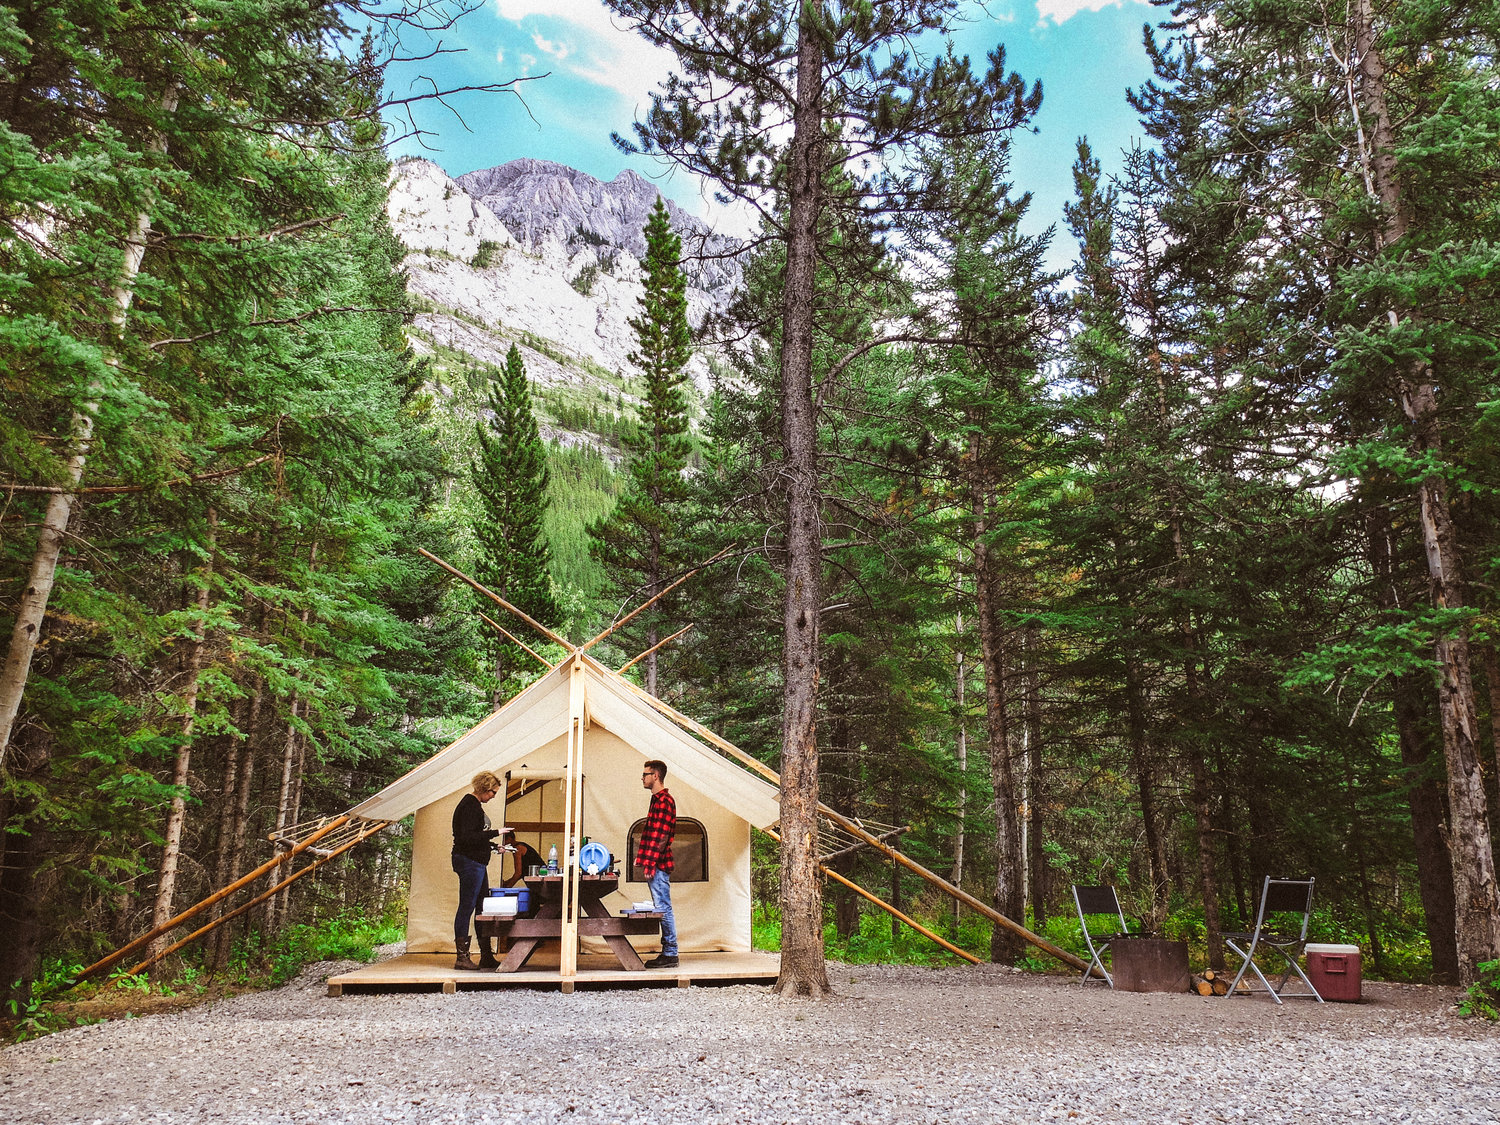 8 Best sites near Canmore for camping with a tent or RV